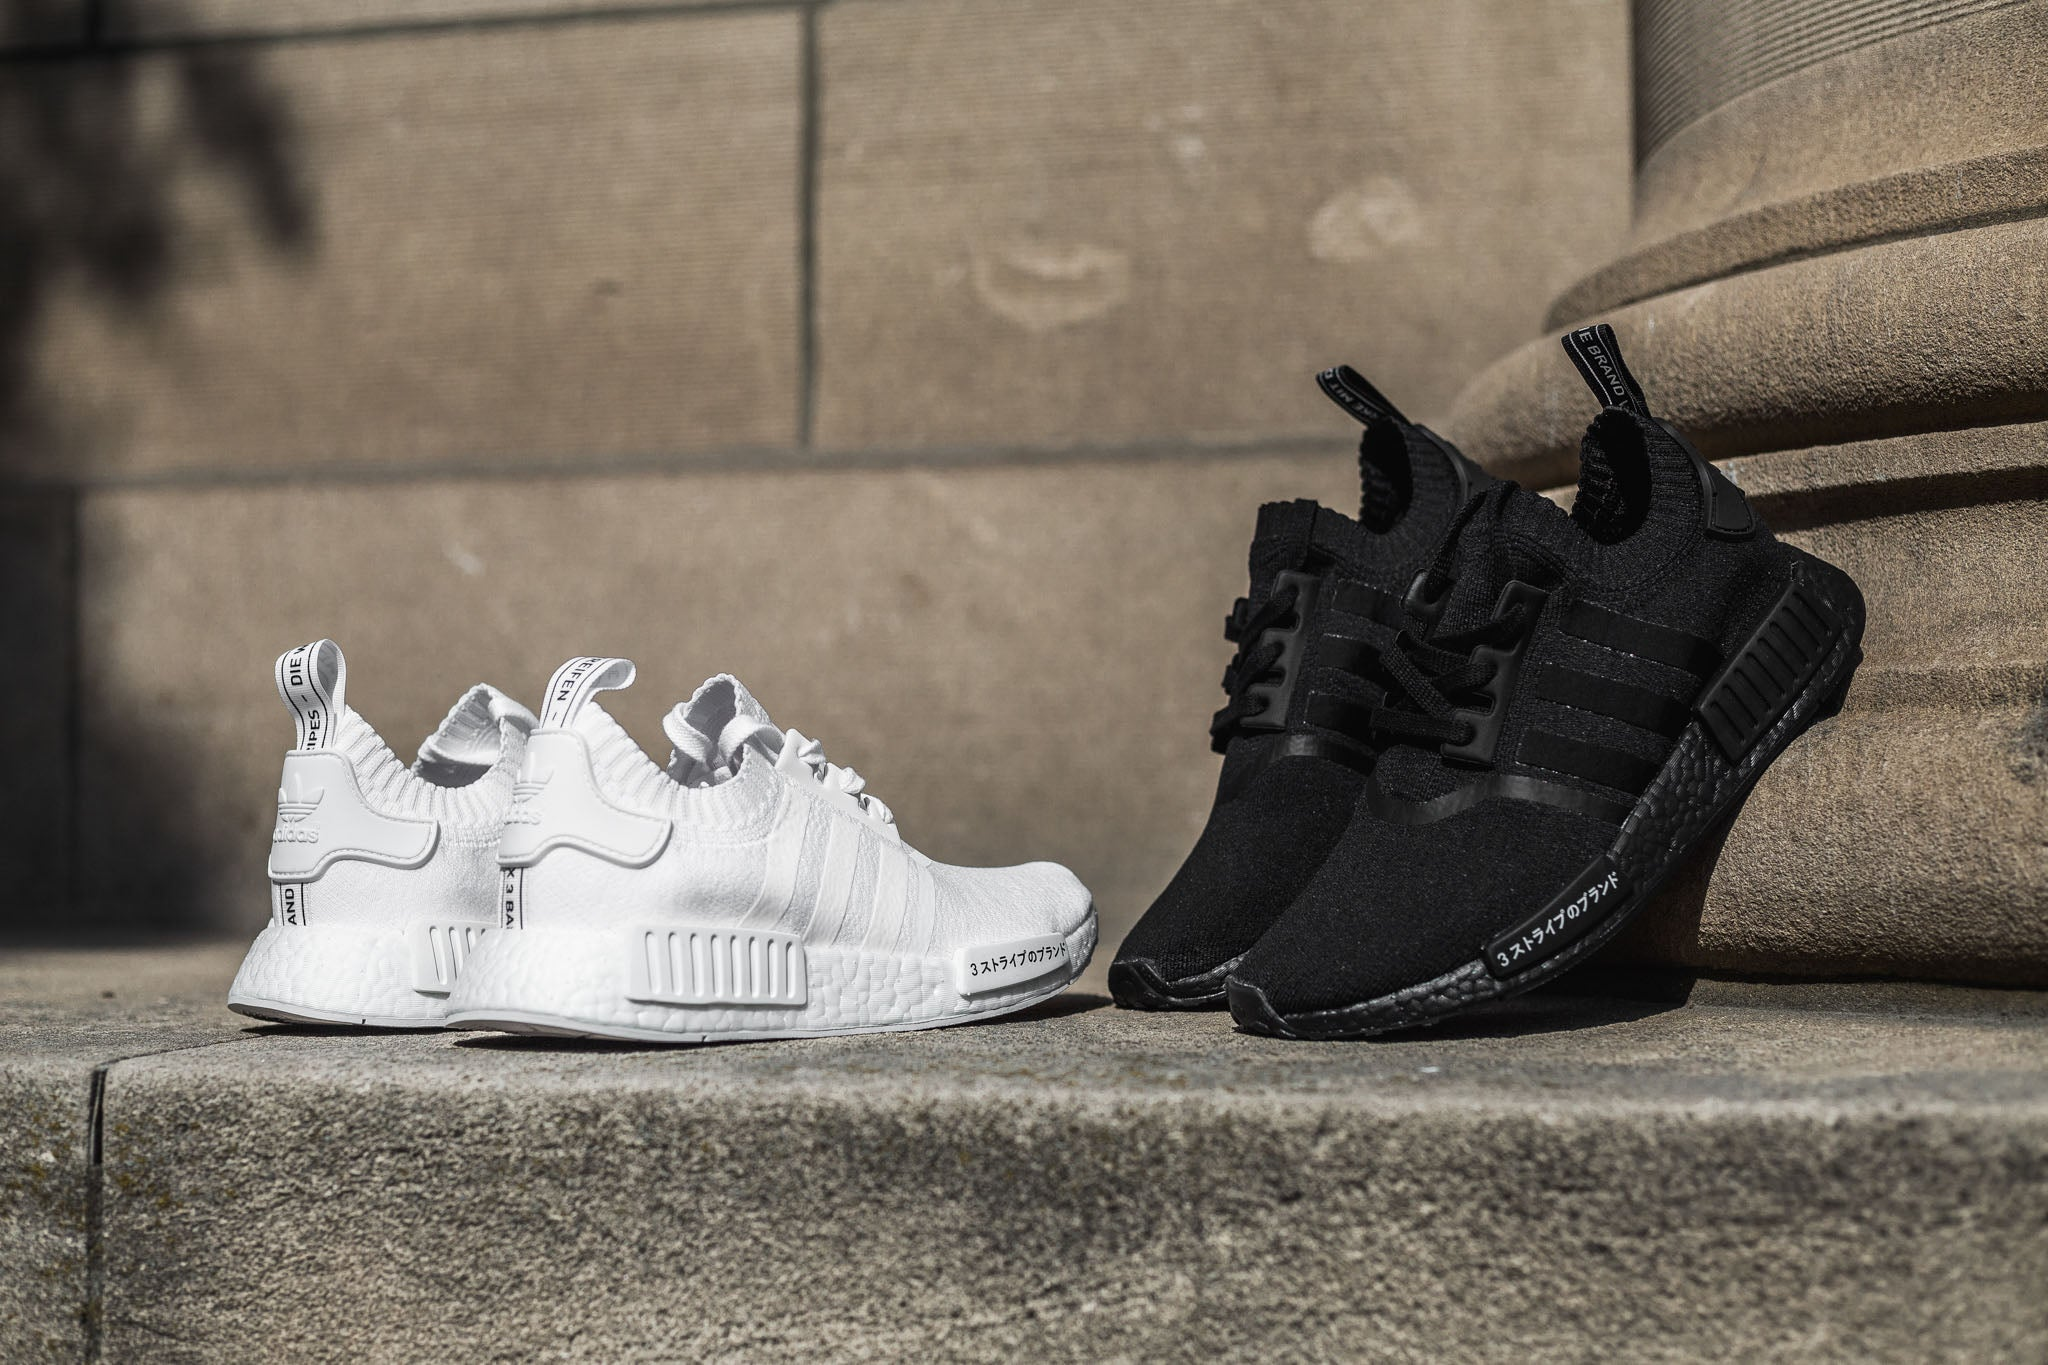 84070204e2d3 The adidas NMD R1 PK returns in the